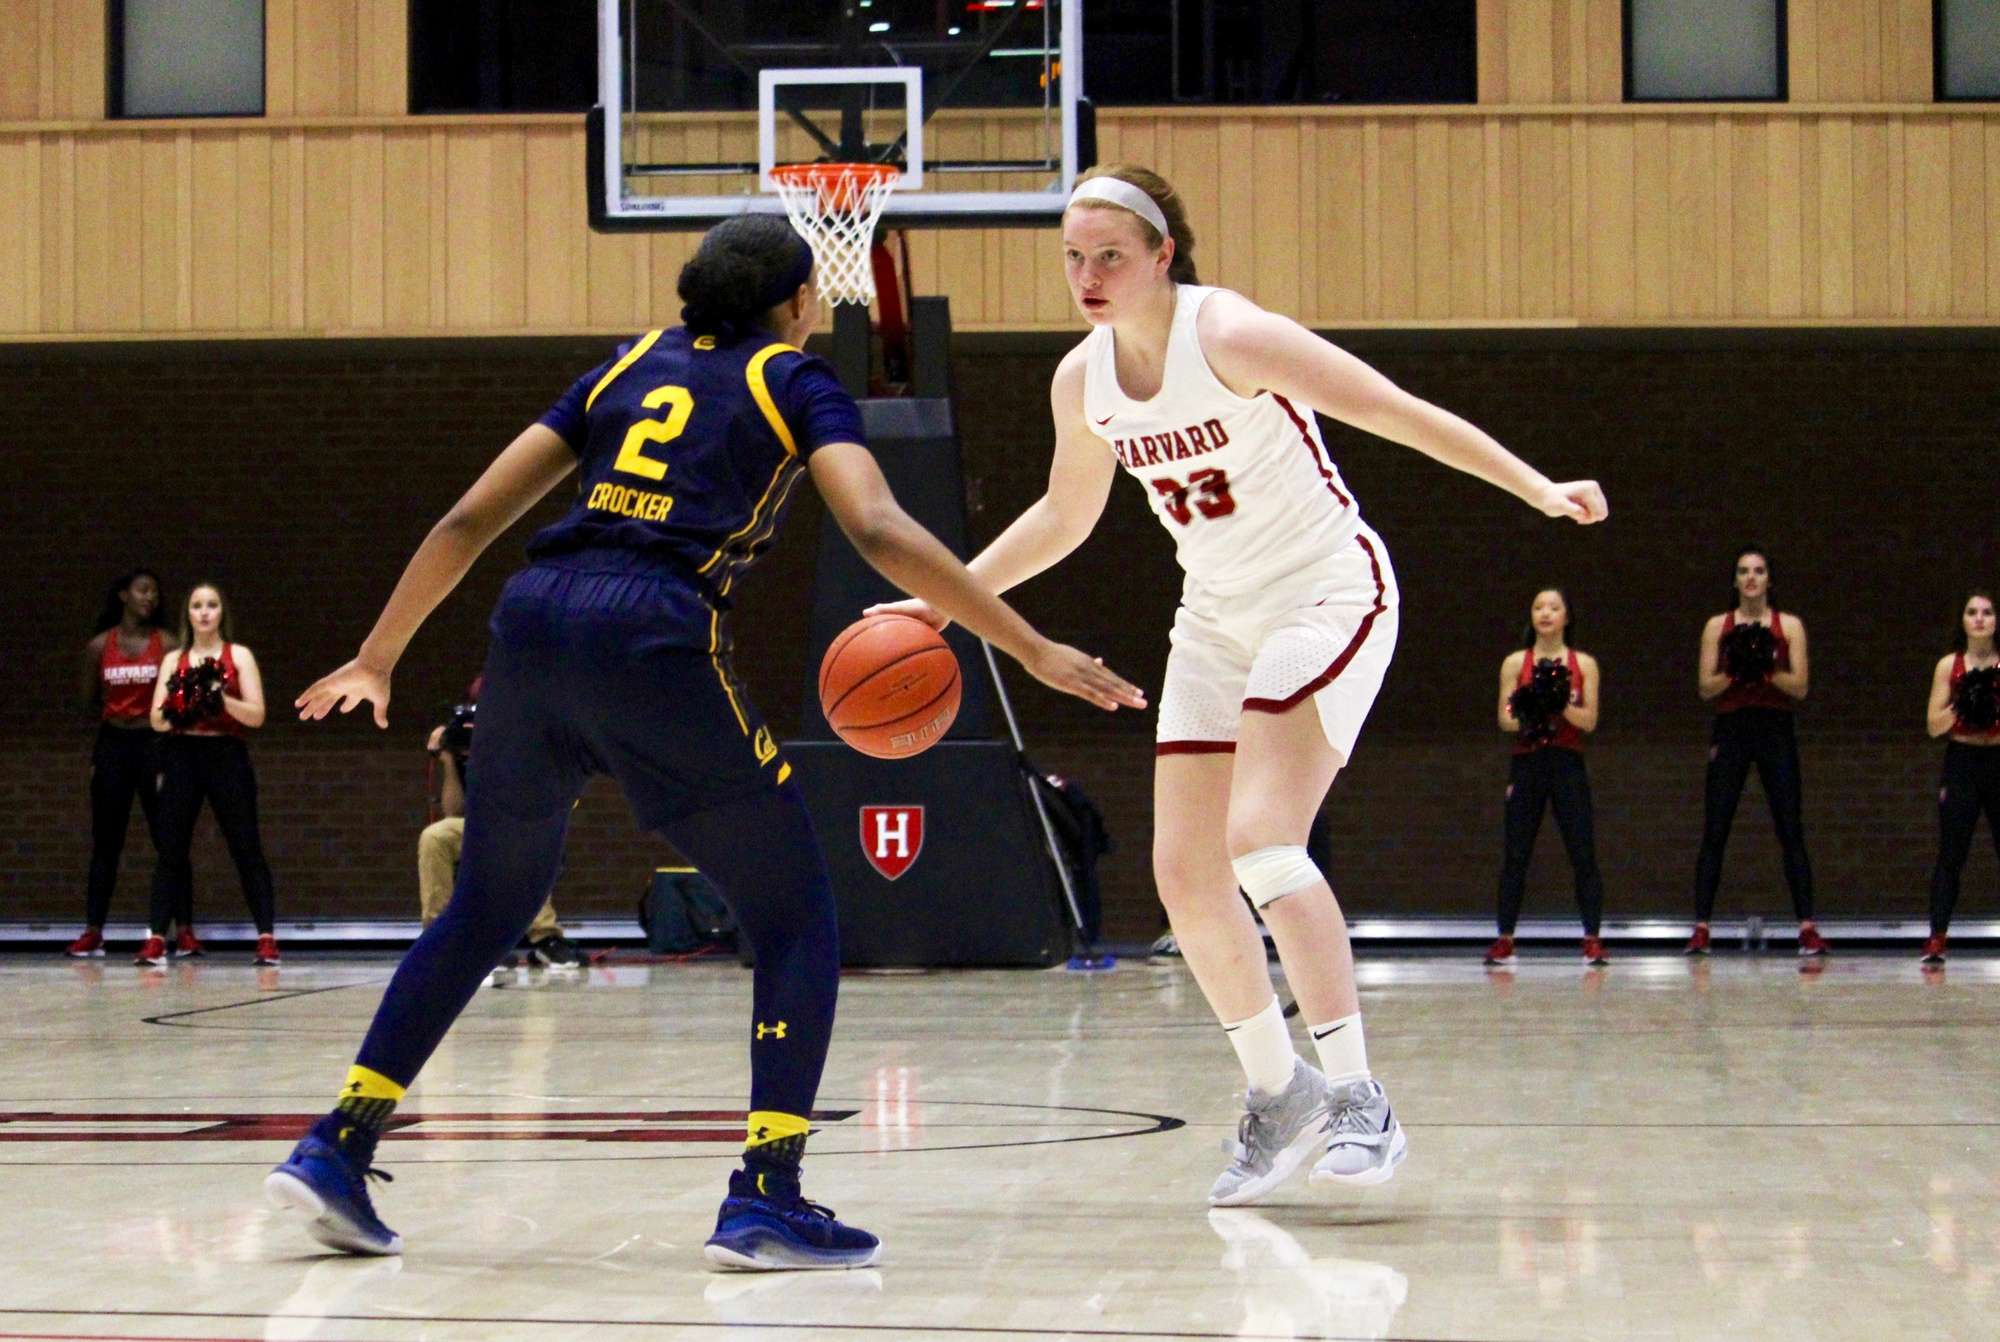 Freshman guard Annie Stritzel scored her first points for the Crimson and finished the game with 7 points.